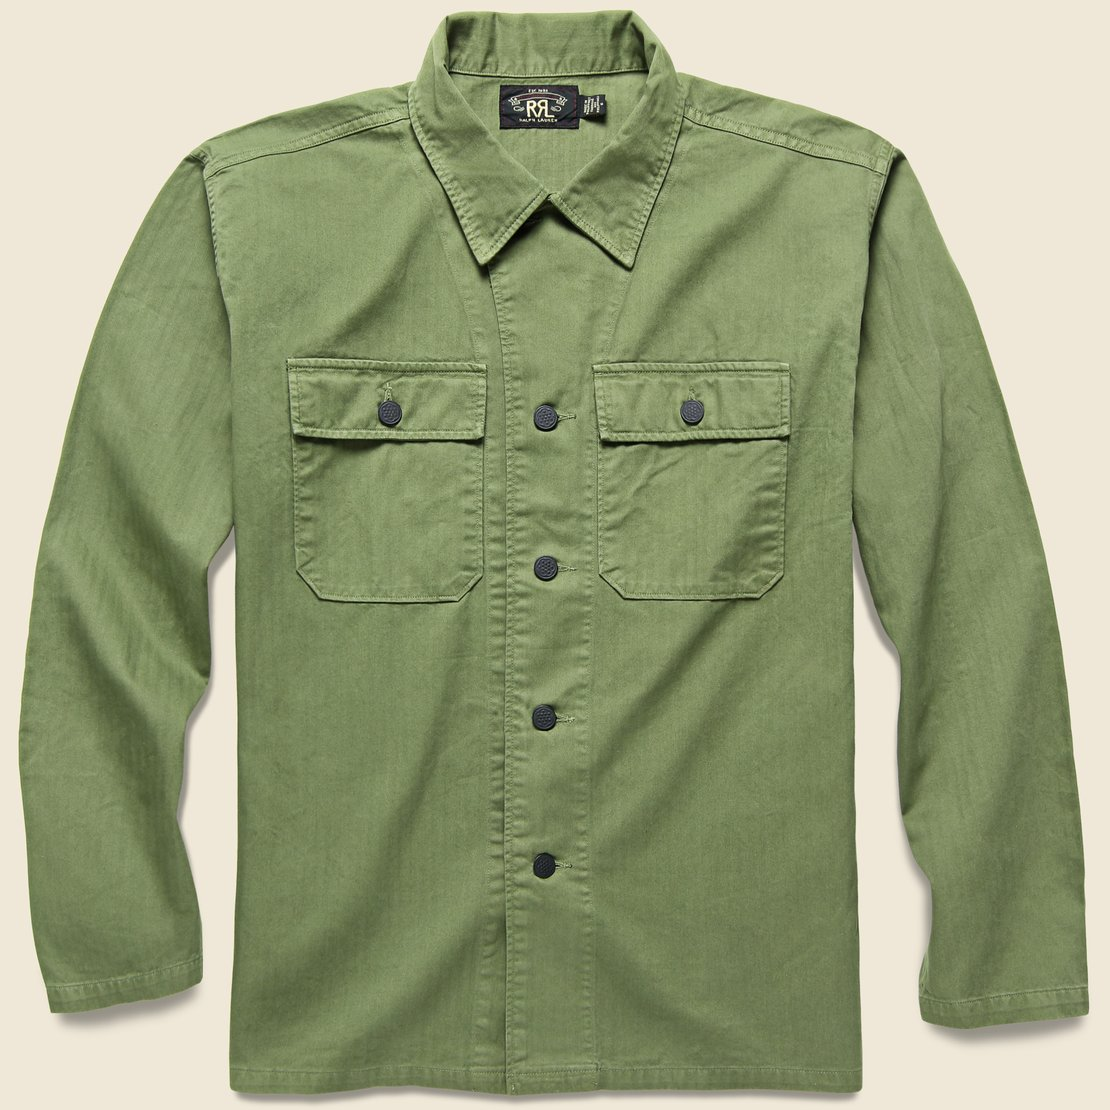 RRL Curtis Herringbone Twill Military Shirt - Olive Drab